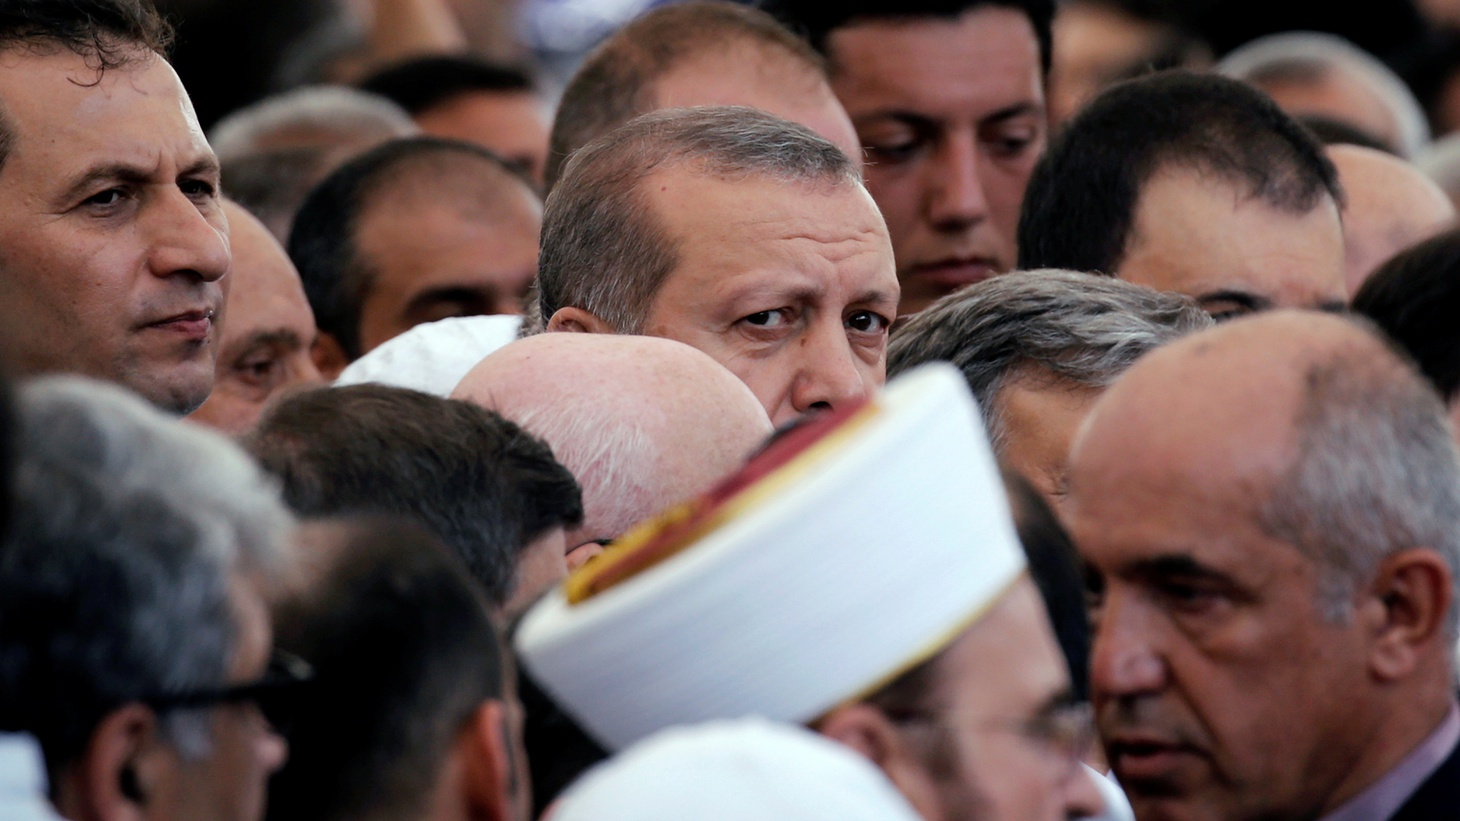 This weekend's failed coup in Turkey could make for major changes in an important US ally. With fervent backing from religious crowds in the streets, will President Recep Erdoğan crown himself as an Islamic leader?